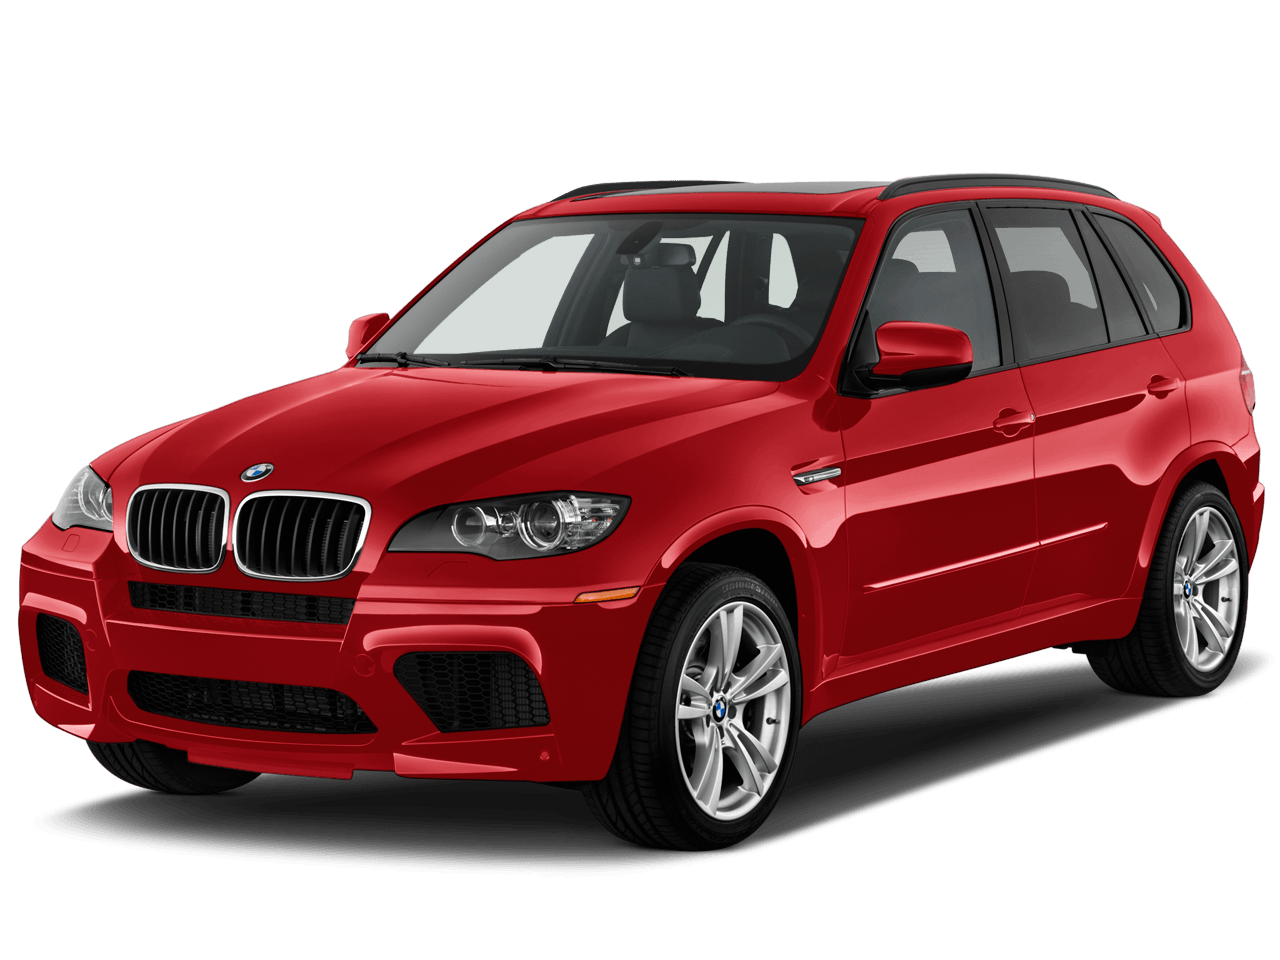 Red Bmw X5 transparent PNG.